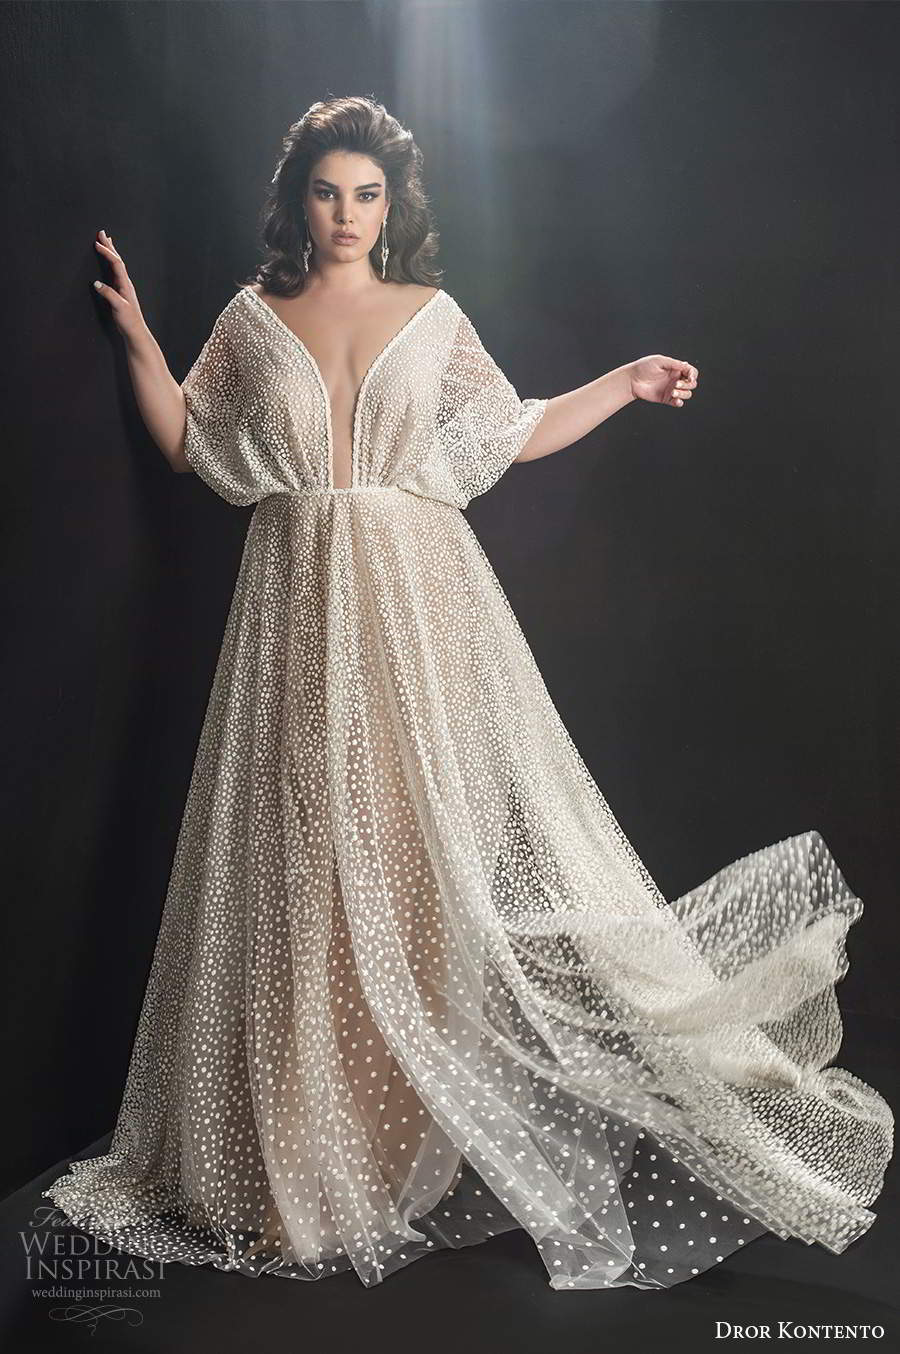 dror kontento 2019 bridal kaftan sleeve plunging v neckline fully embellished glitzy a line ball gown wedding dress sweep train (7) mv